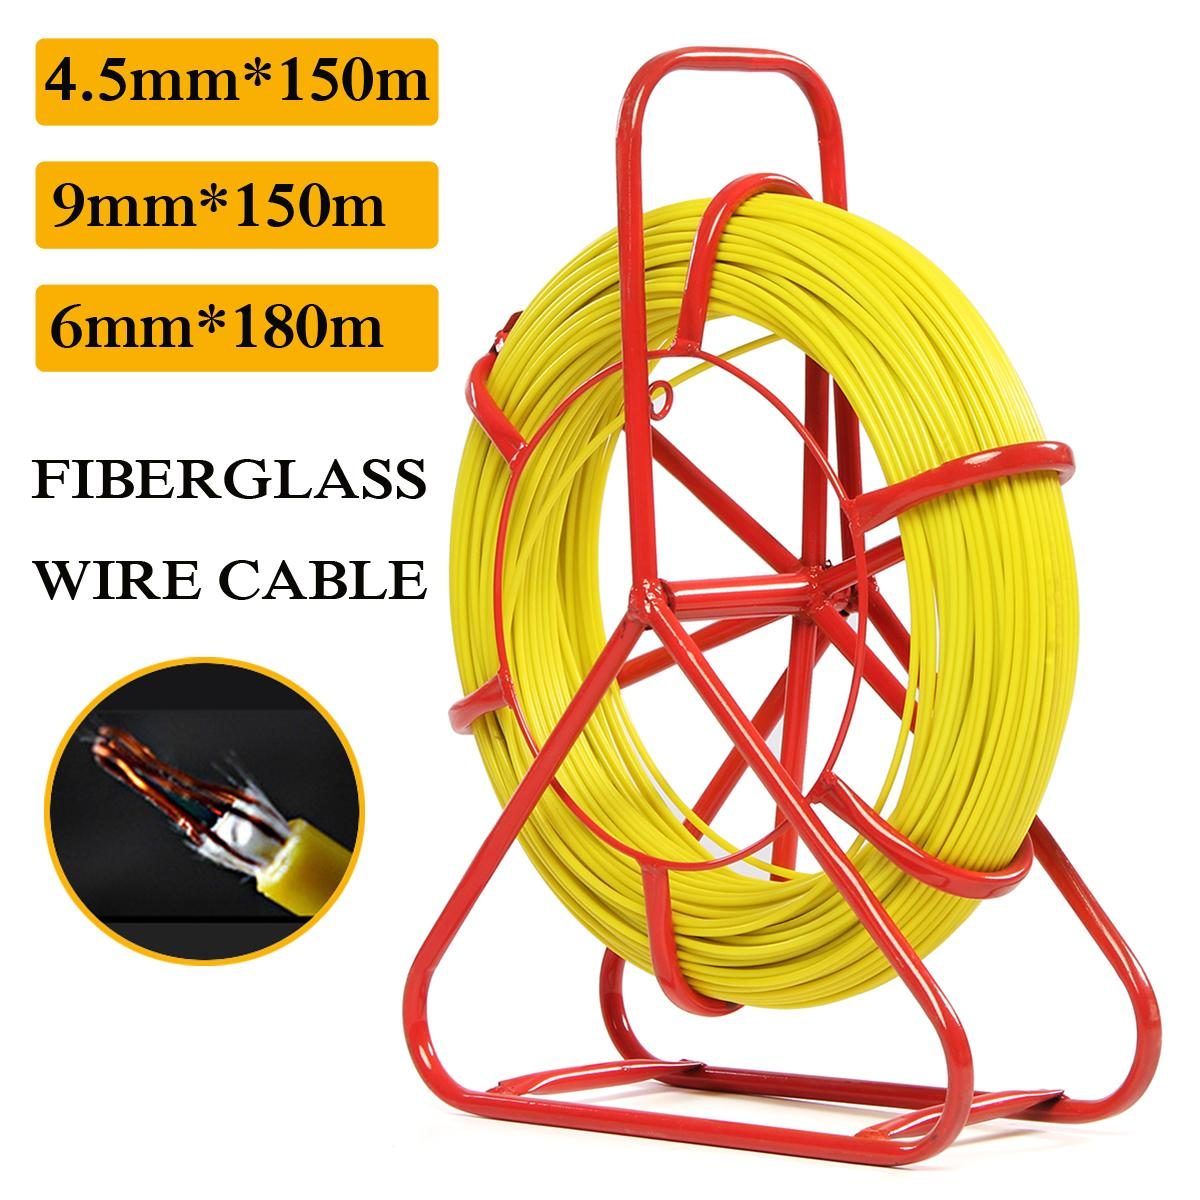 Non-conductive FISH TAPE FIBERGLASS WIRE CABLE Running Tube Running Rod Puller Kit Flsh Tape with superior pulling strength cable access kits 60cm rods with hook rings led light magnet chain cable puller push pull rod sanke rod wire puller